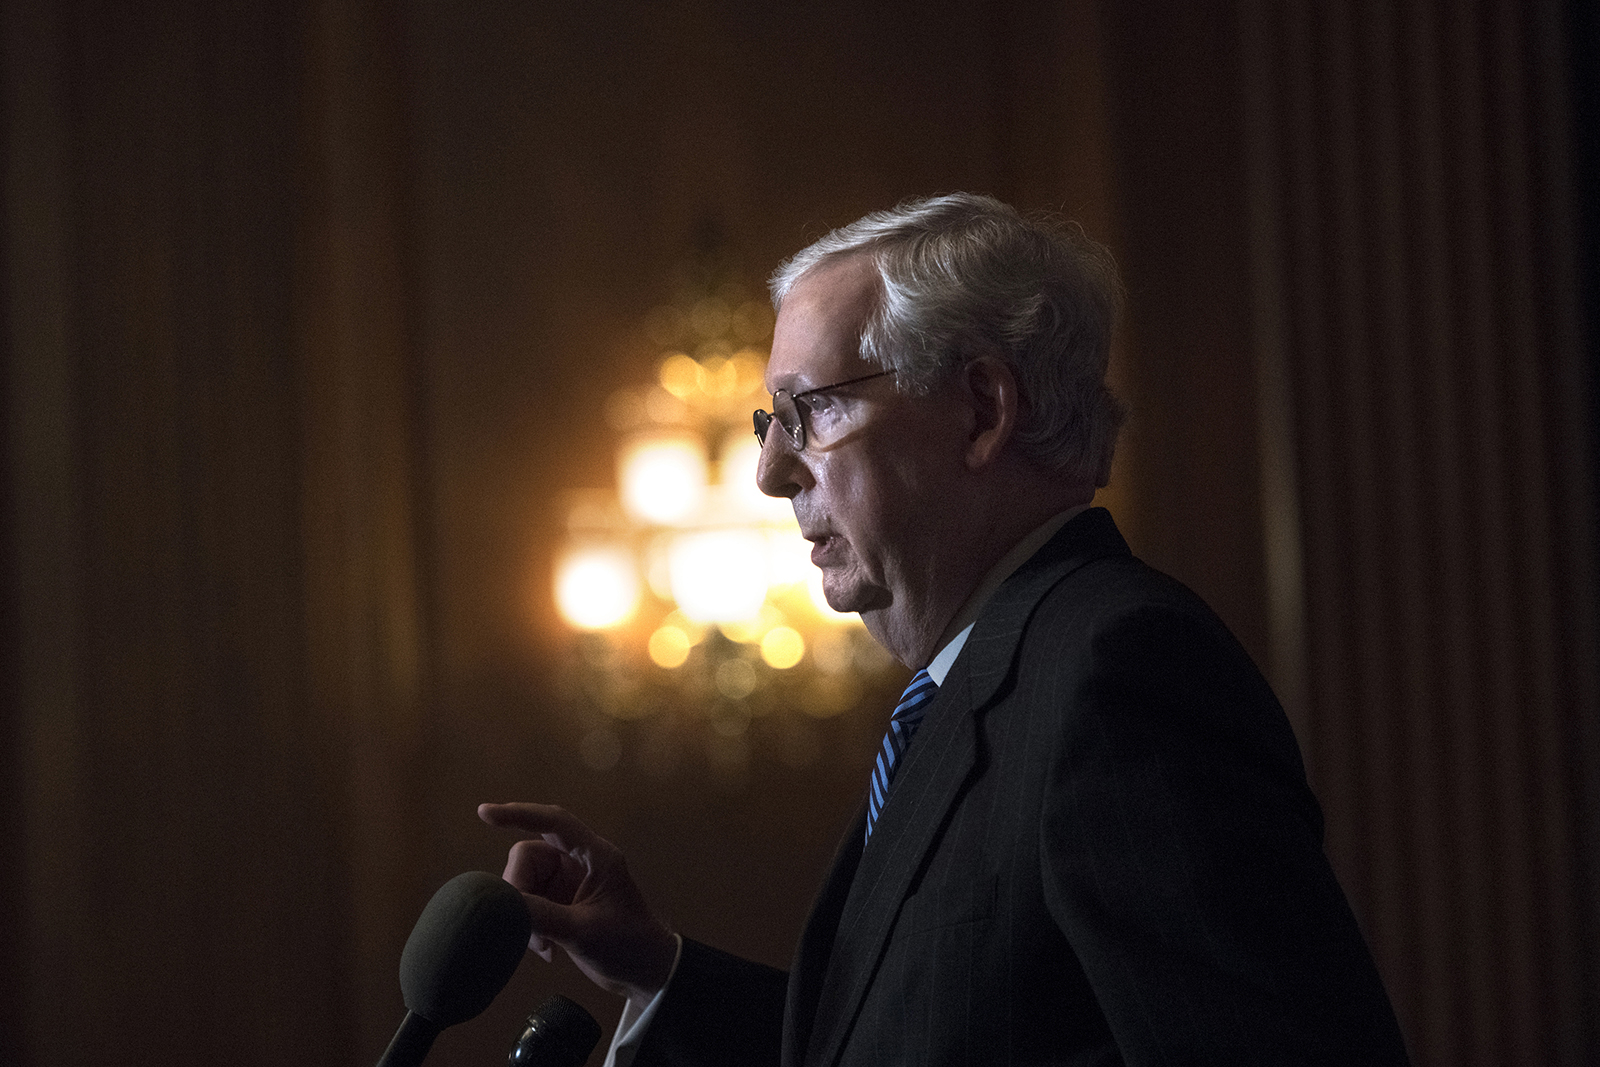 Senate Majority Leader Mitch McConnell of Kentucky speaks during a news conference with other Senate Republicans on Capitol Hill in Washington on Tuesday, Dec. 15.